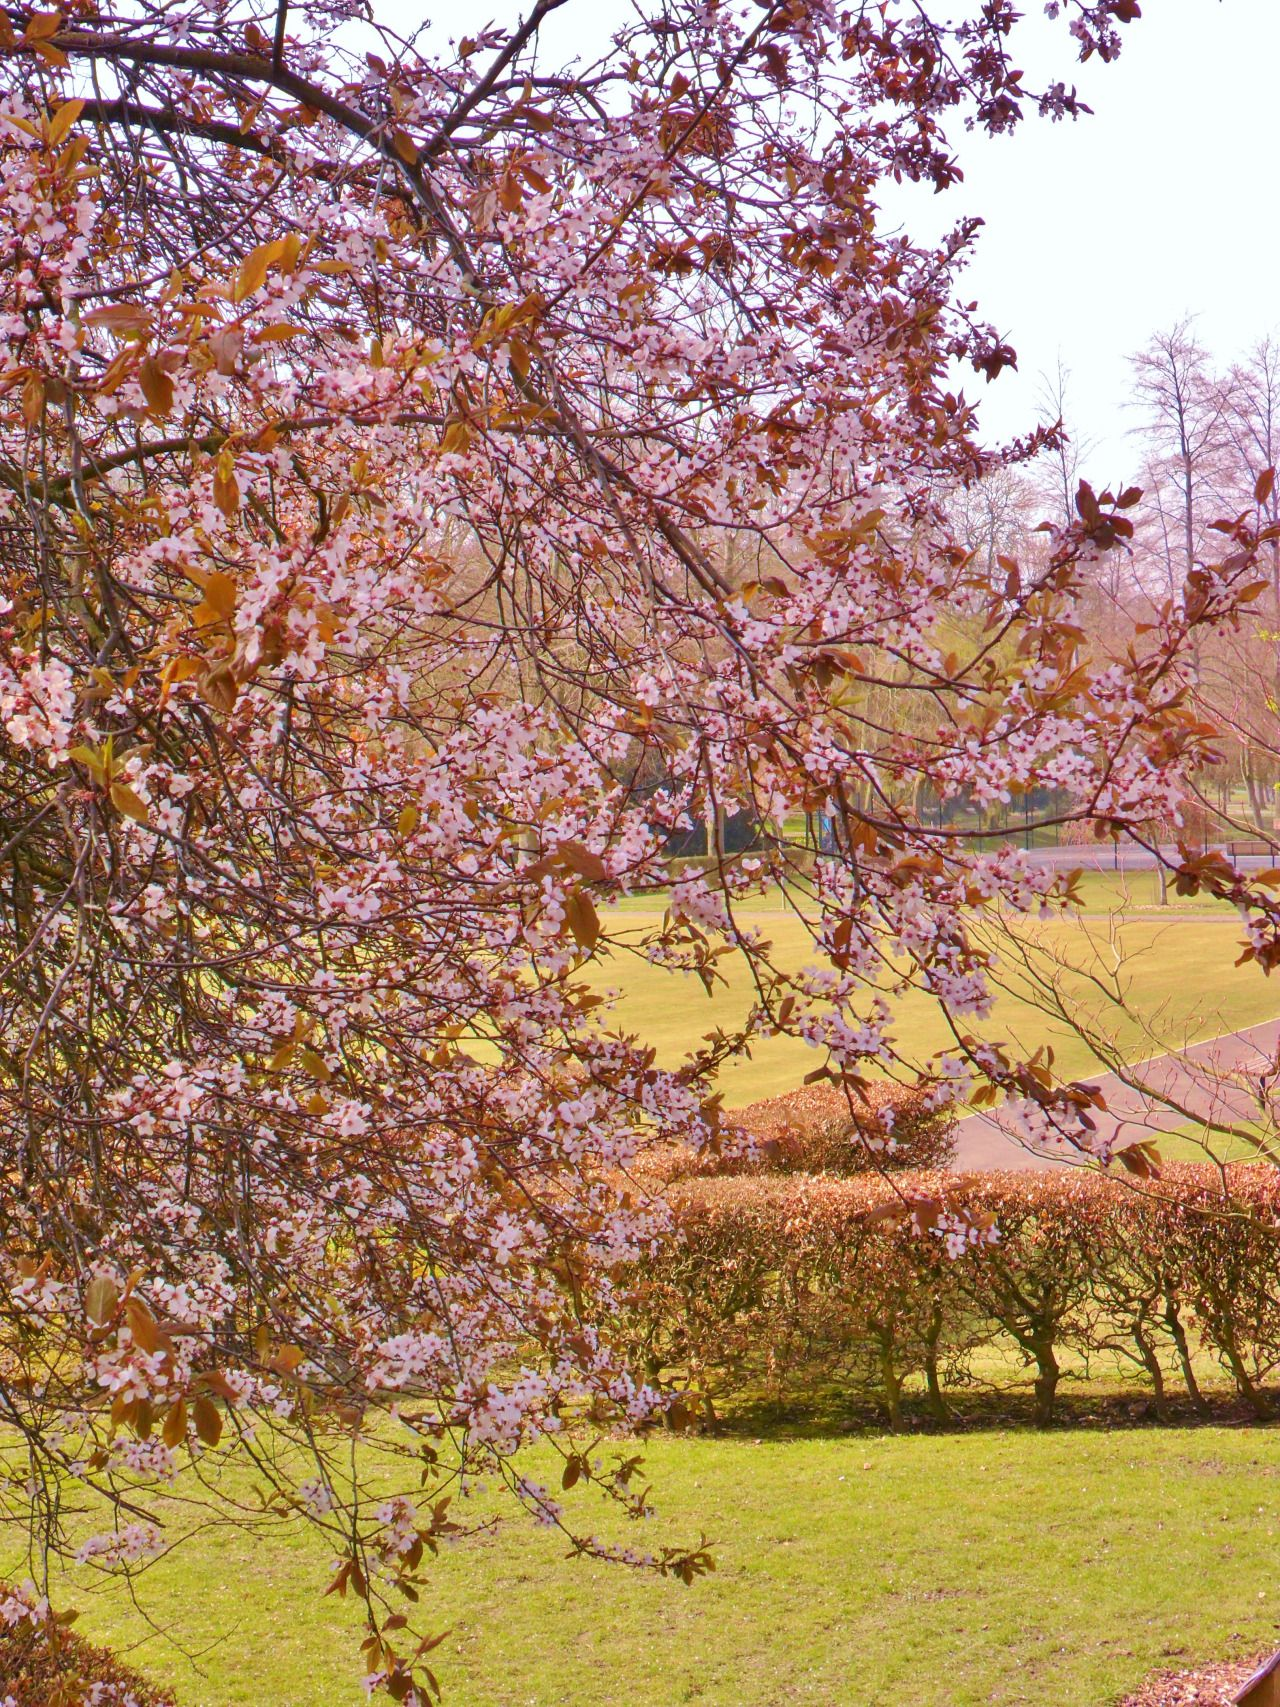 vwcampervan-aldridge:  Cherry Blossom in Walsall Arboretum, Walsall, England All Original Photography by vwcampervan-aldridge